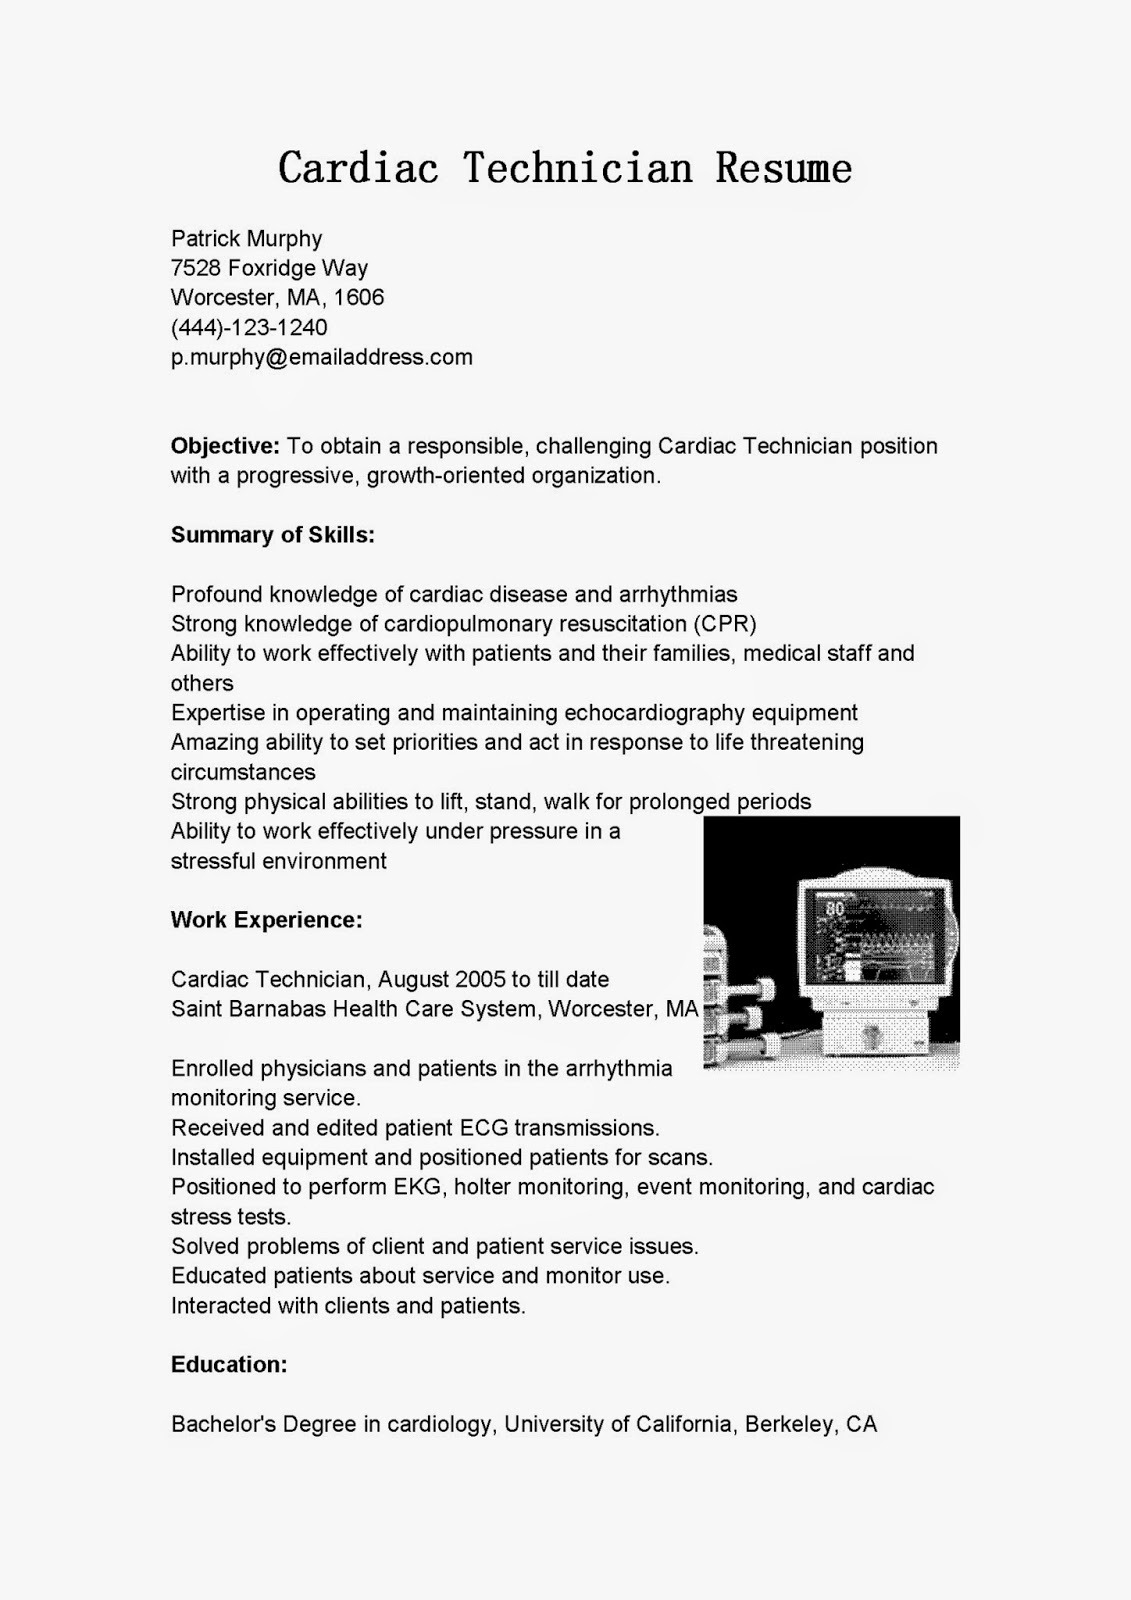 resume samples  cardiac technician resume sample